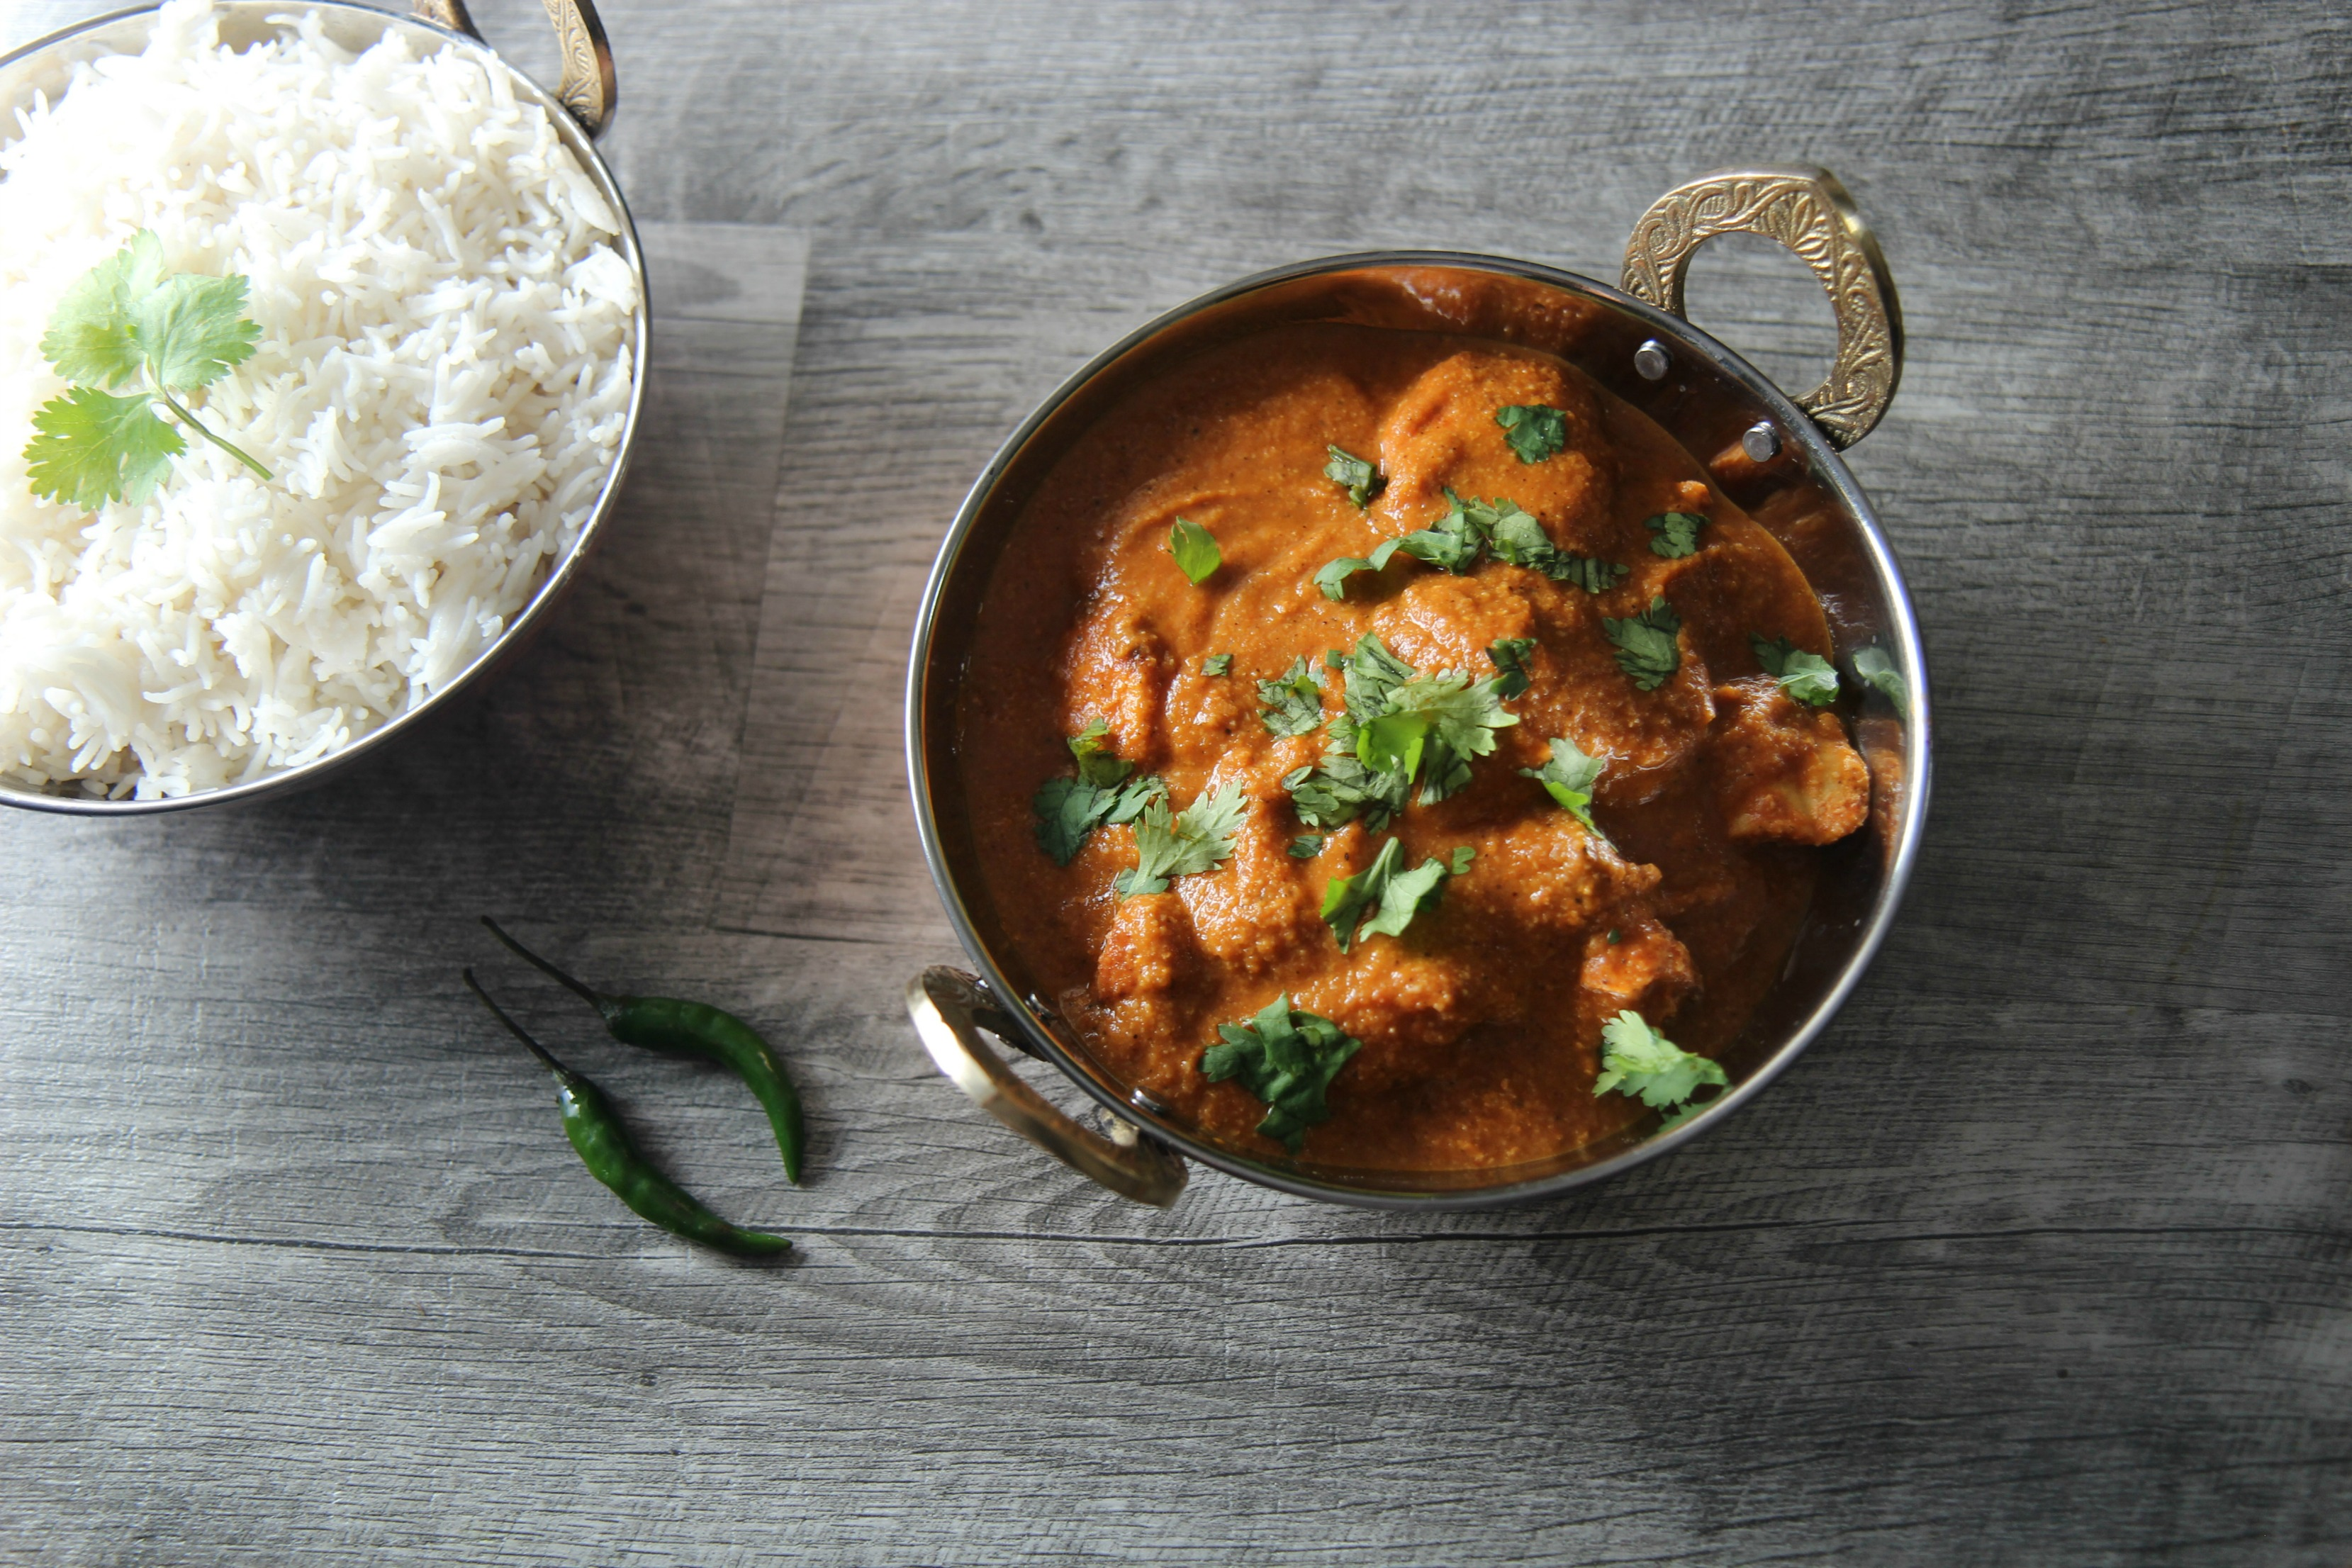 Healthy and tasty Indian food served with white rice.